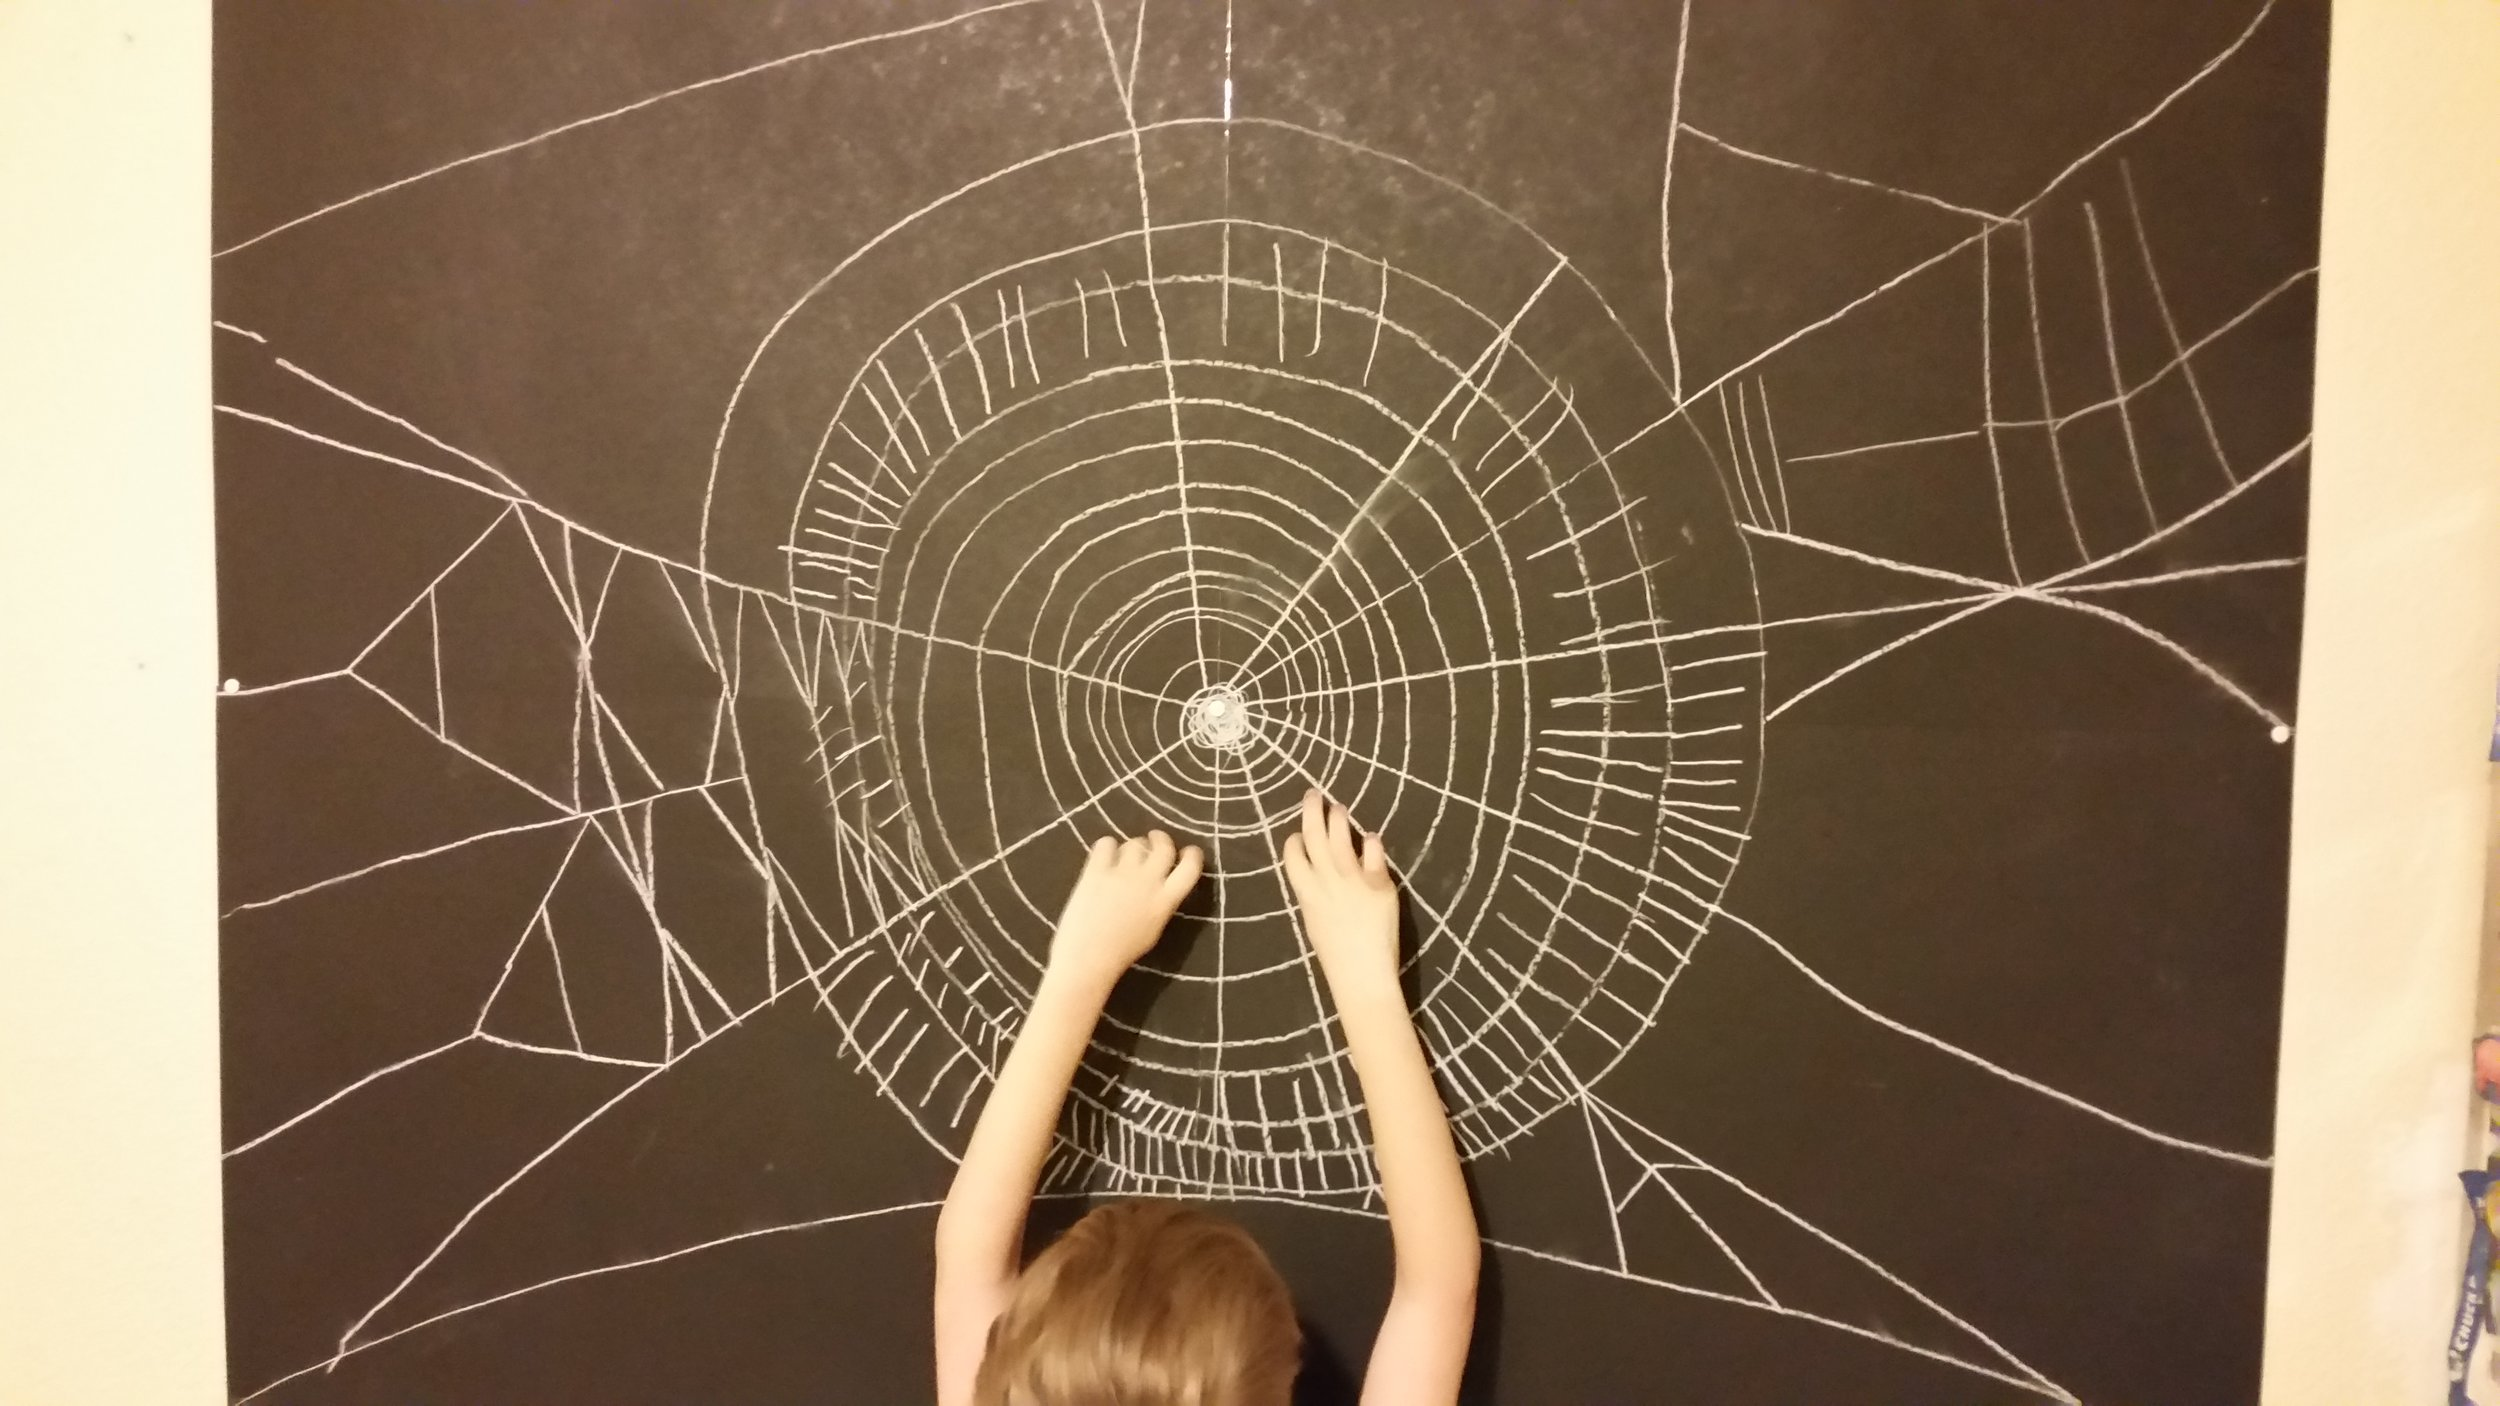 Everything is a web.